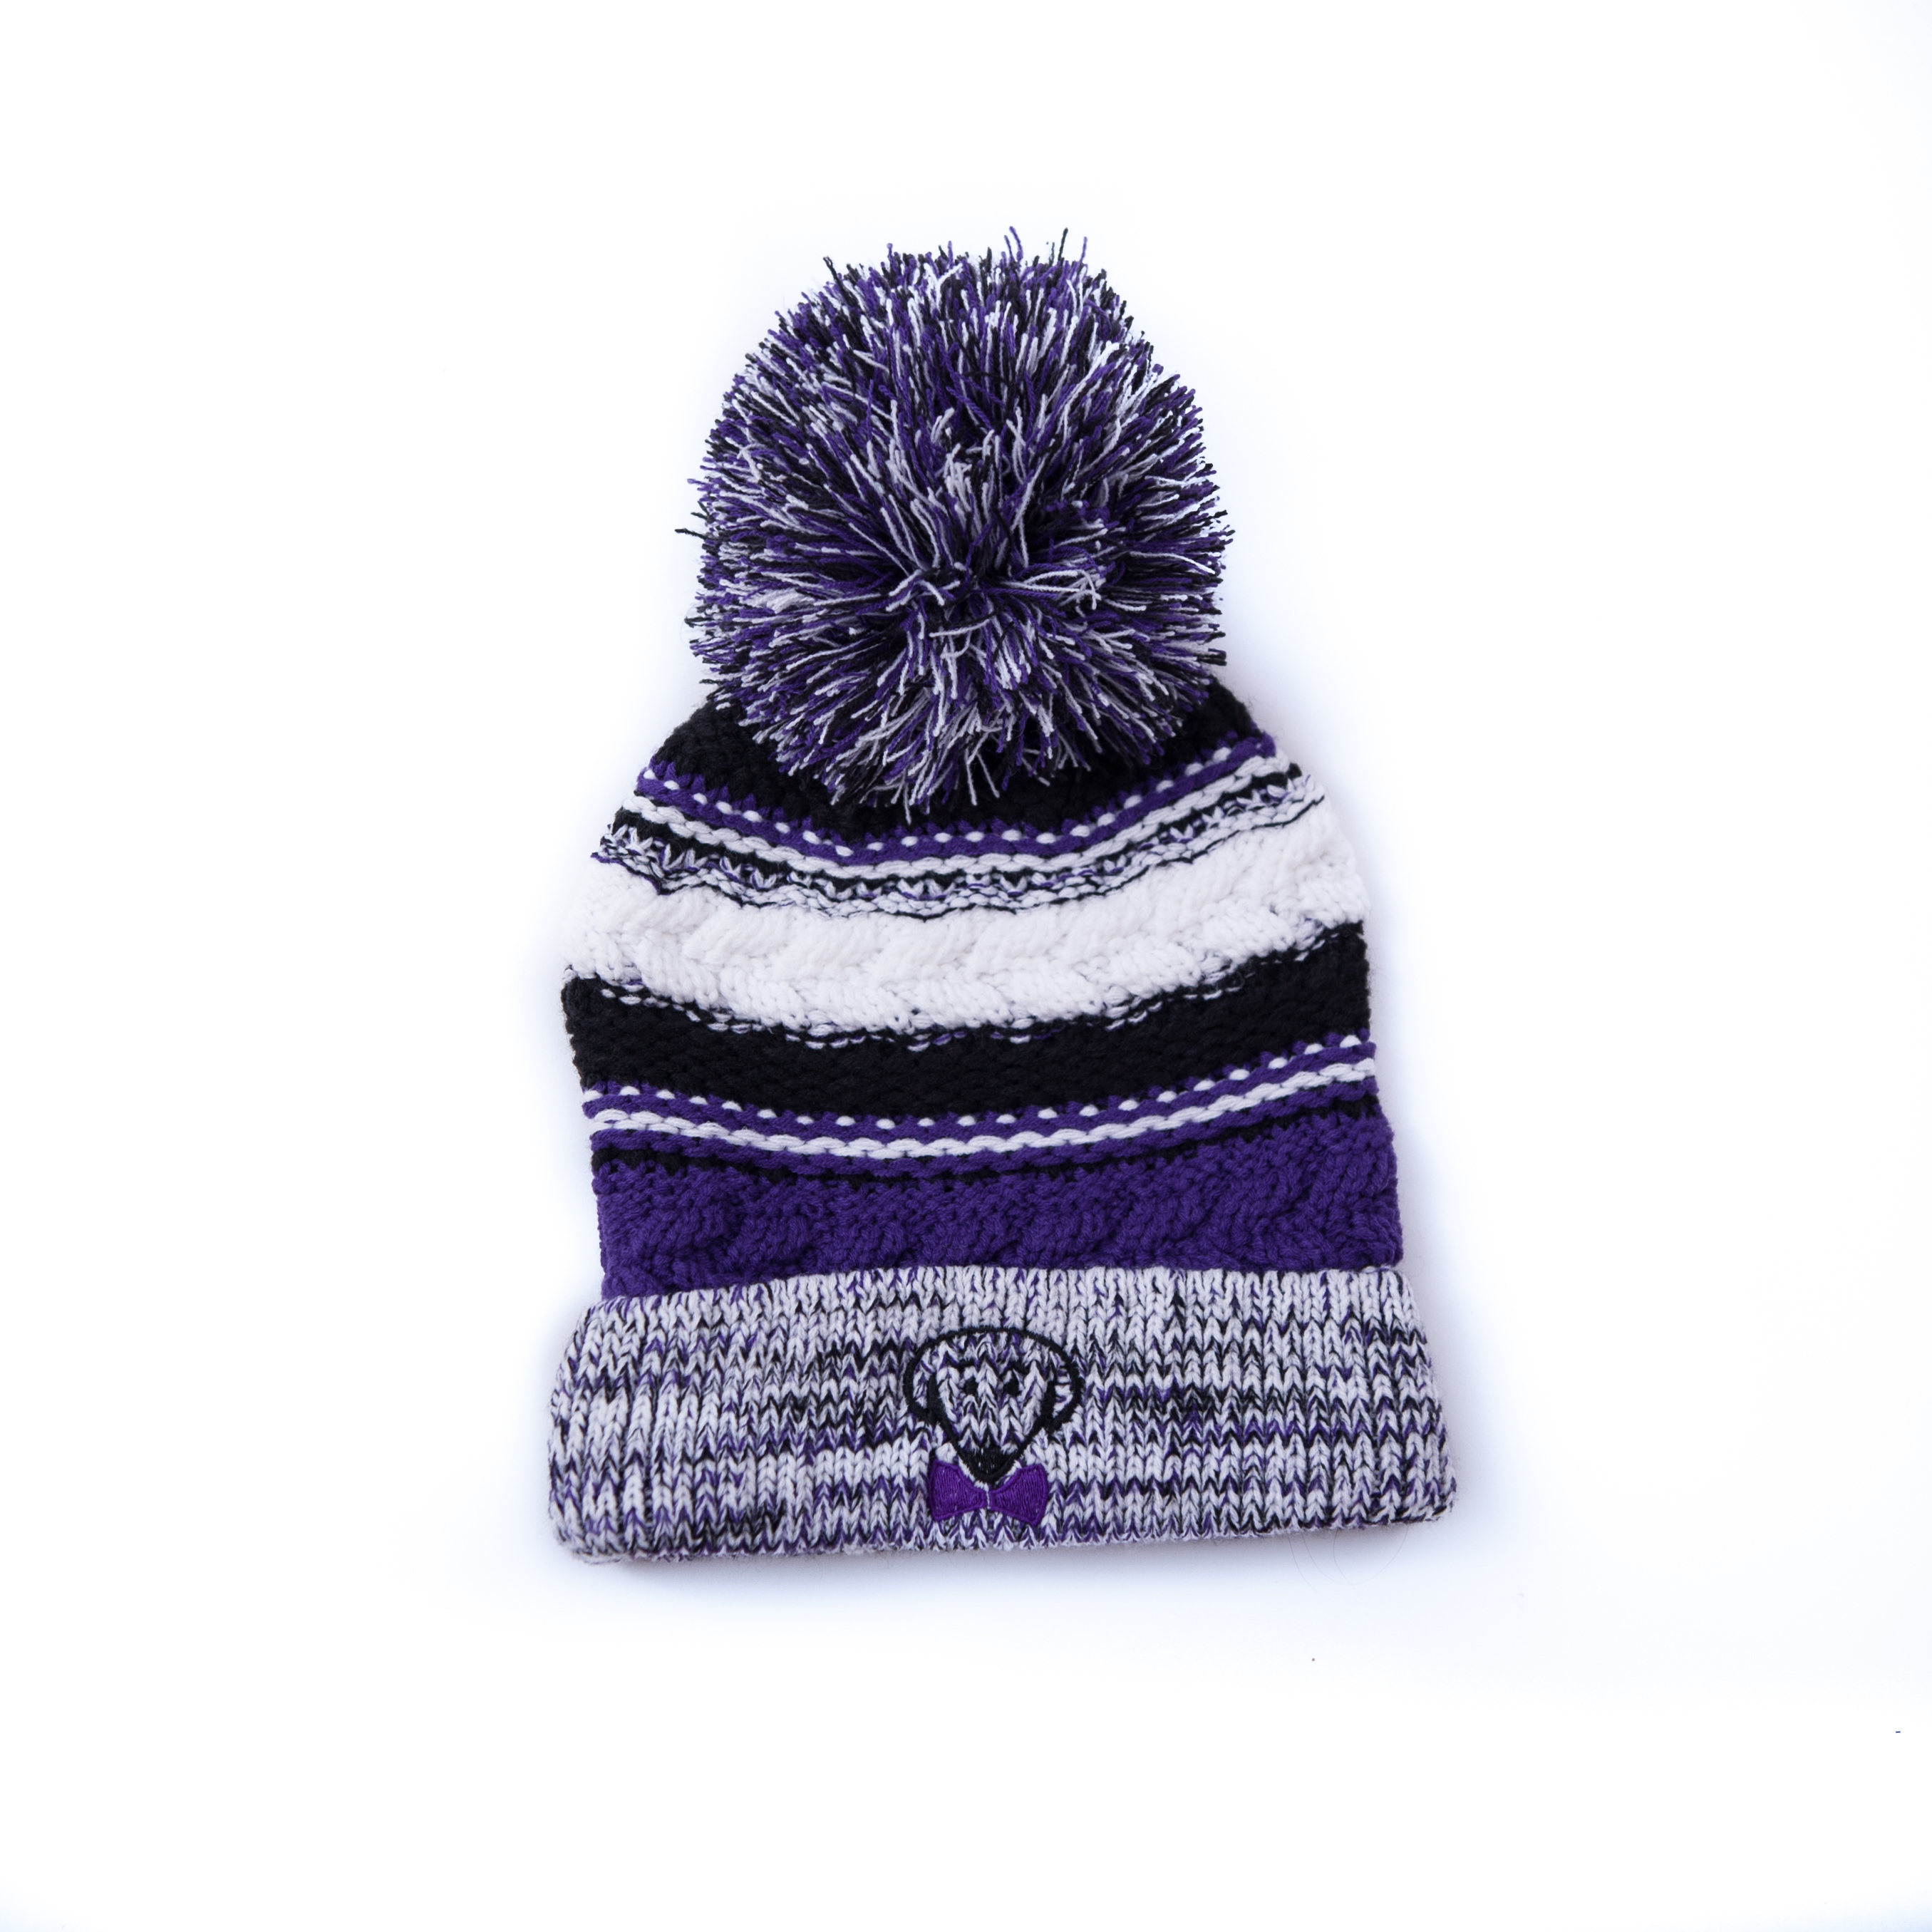 Purple, black, and white winter knit hat – Stay Warm, Look Cute